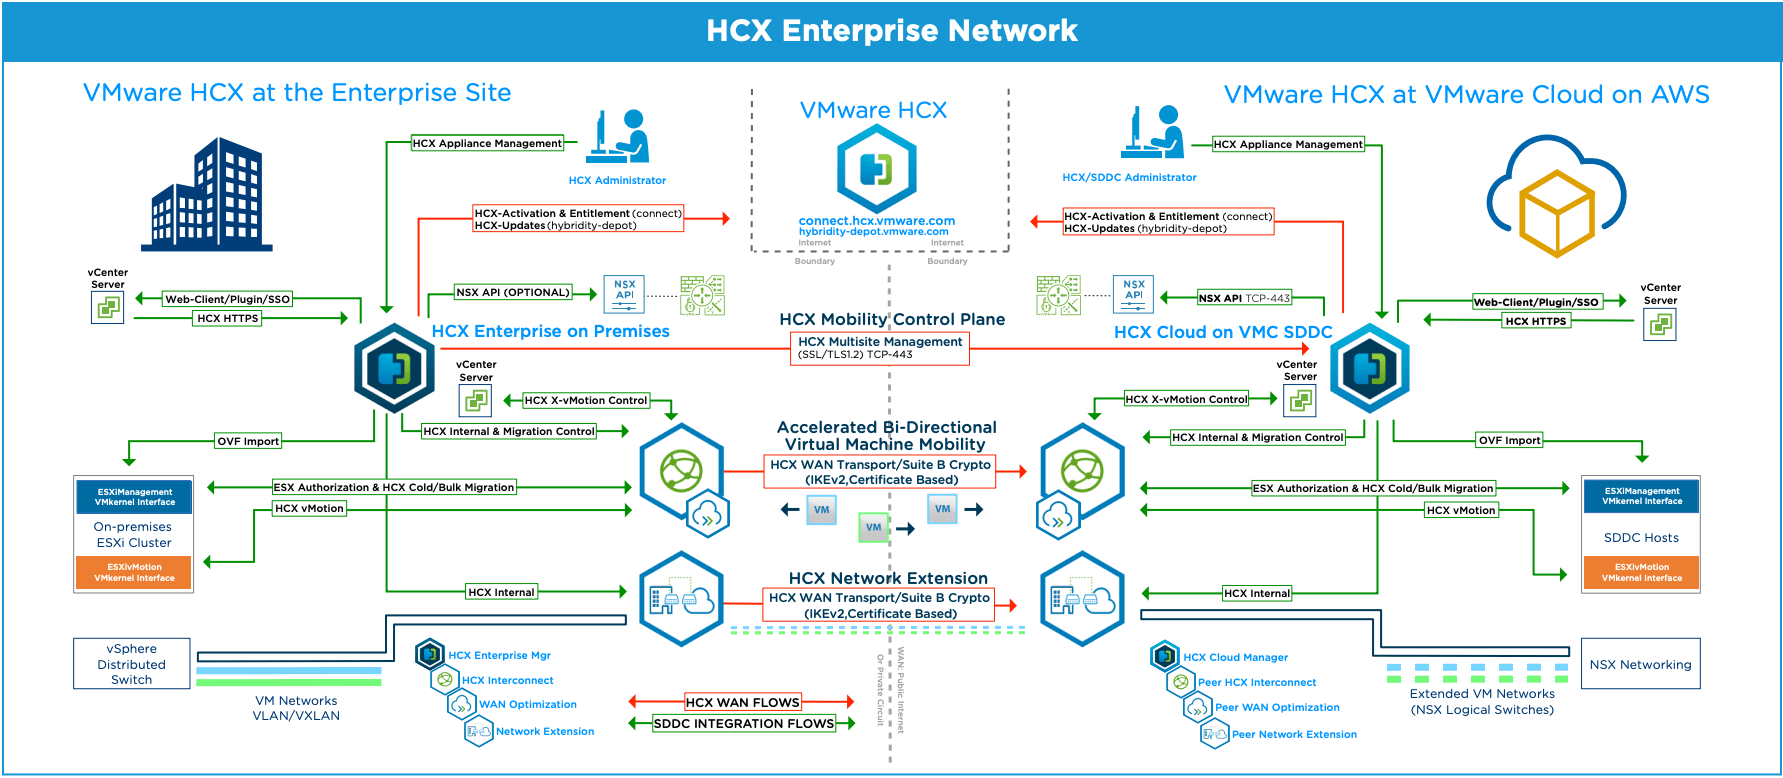 A closer look at HCX on VMConAWS (Part 1): Introduction